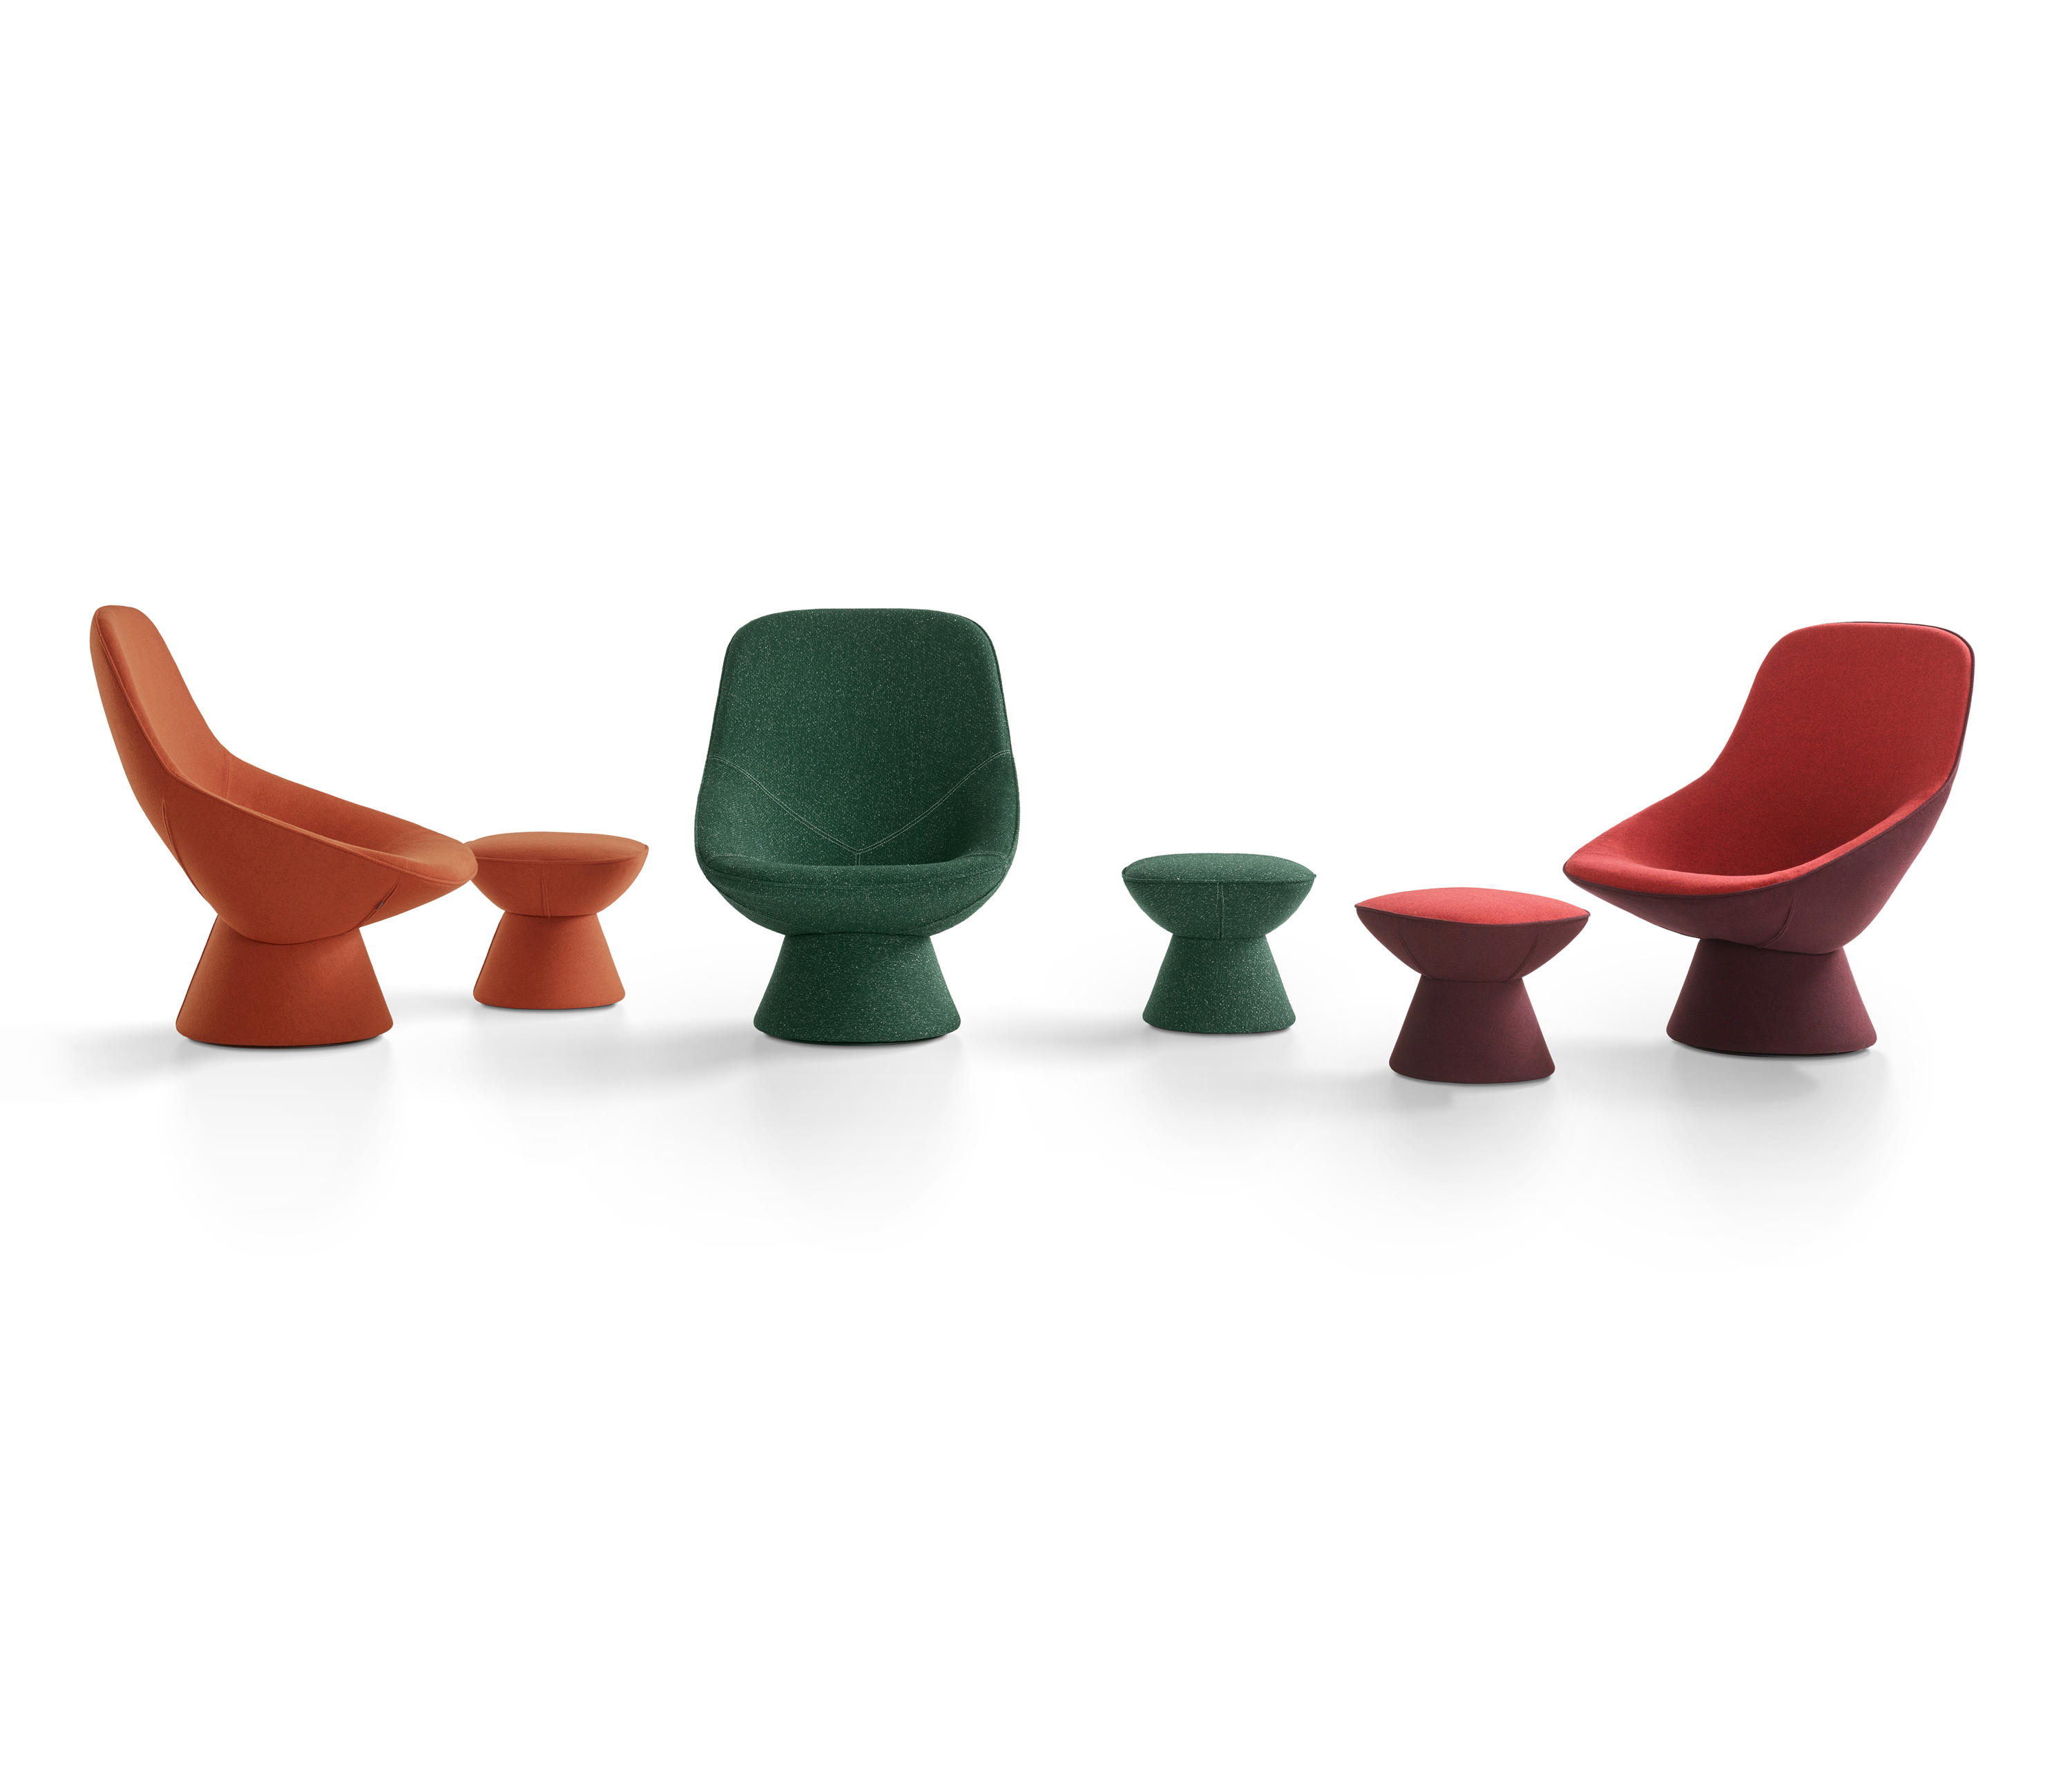 Pala Lounge by Luca Nichetto for Artifort